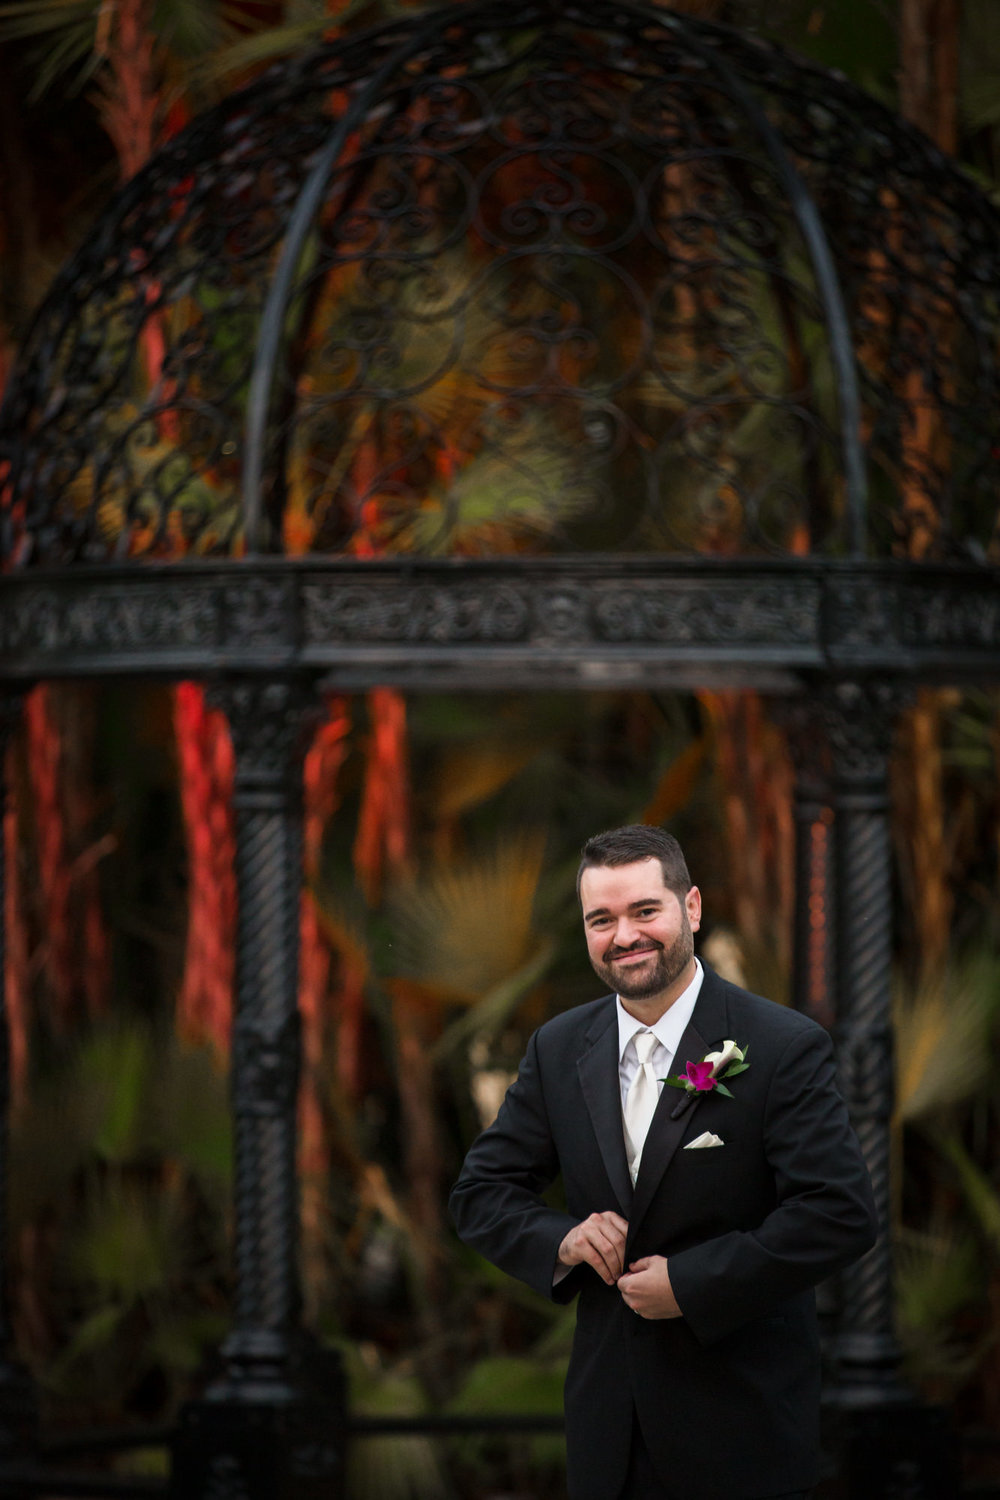 Benvenuto_Wedding_catholic_Florida_Bride-Groom-80.jpg